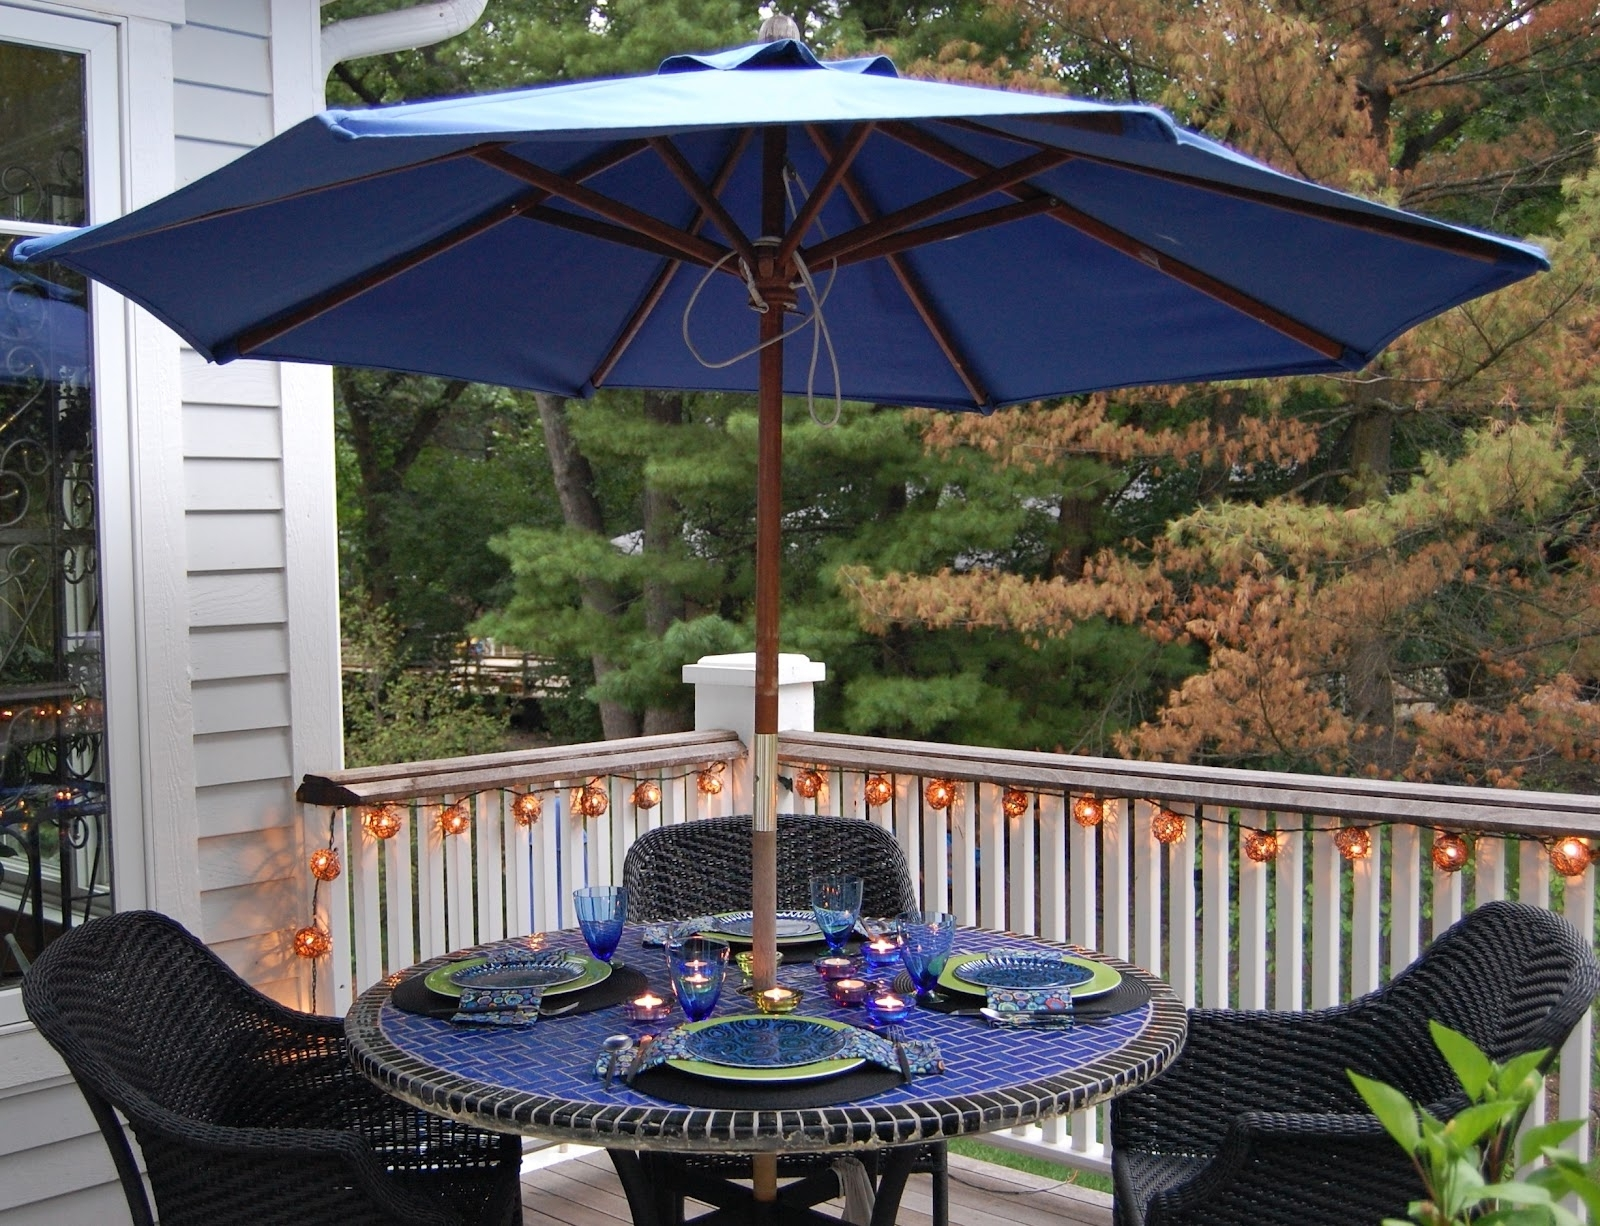 Walmart Patio Umbrellas Intended For Preferred Furniture: Outdoor Outdoor Patio Sets With Umbrella Awesome Design (View 12 of 20)